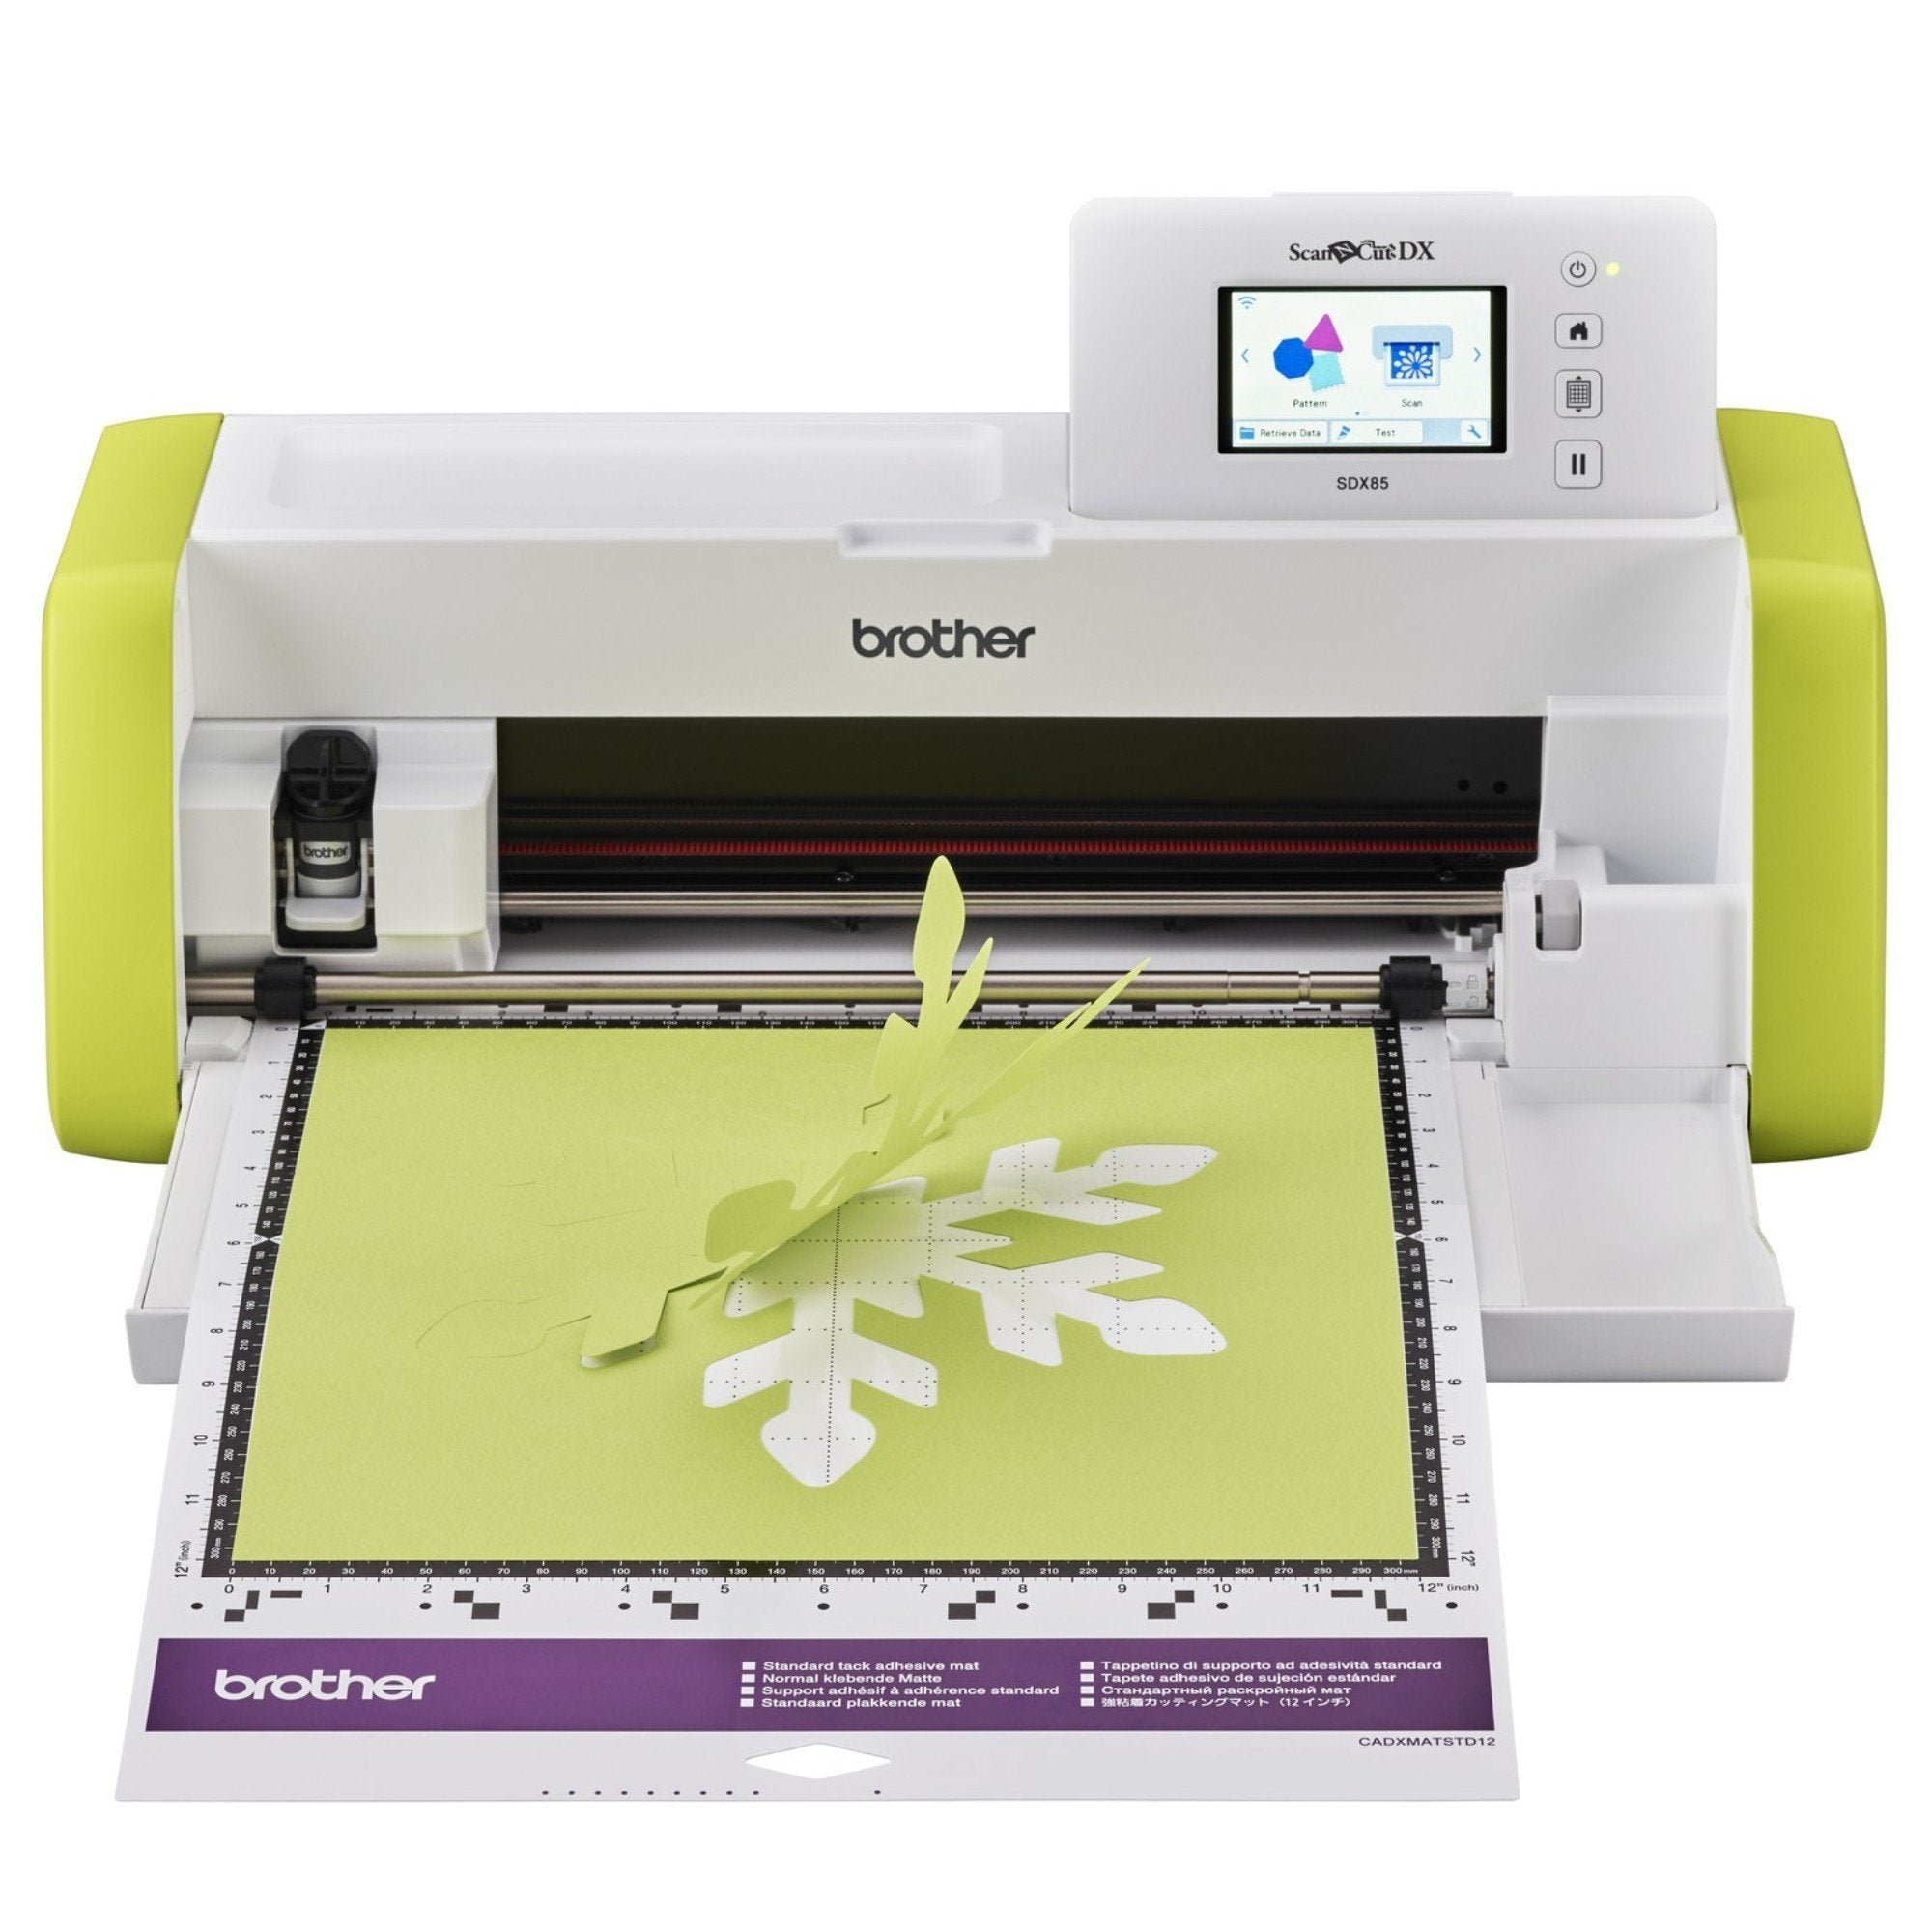 Brother ScanNCut SDX85 Electronic Cutting Machine Review